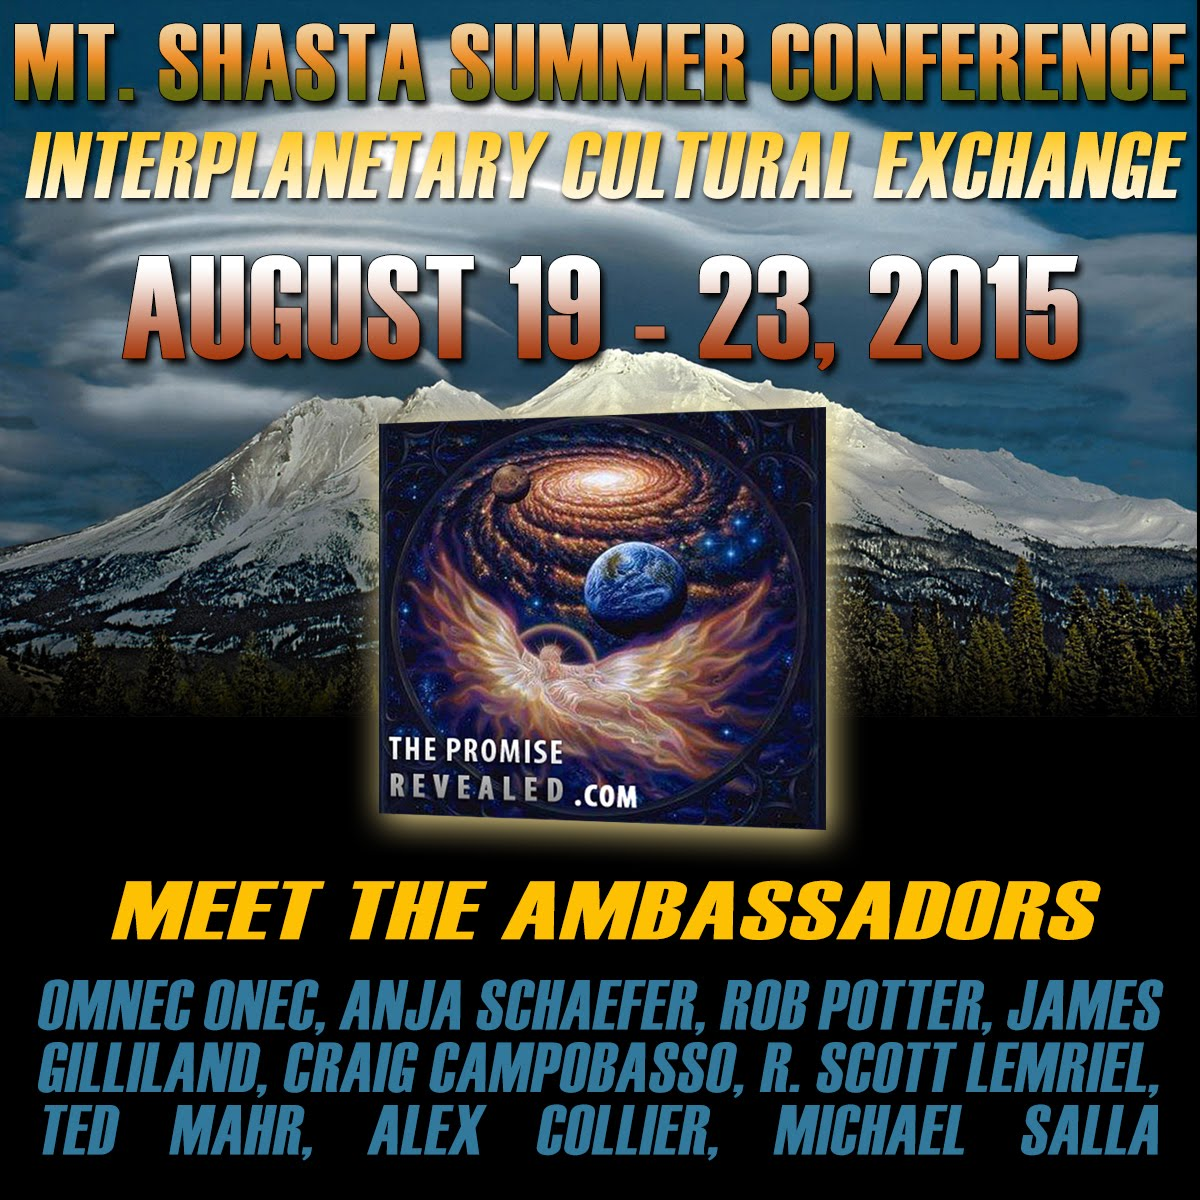 Mt. Shasta Summer Conference